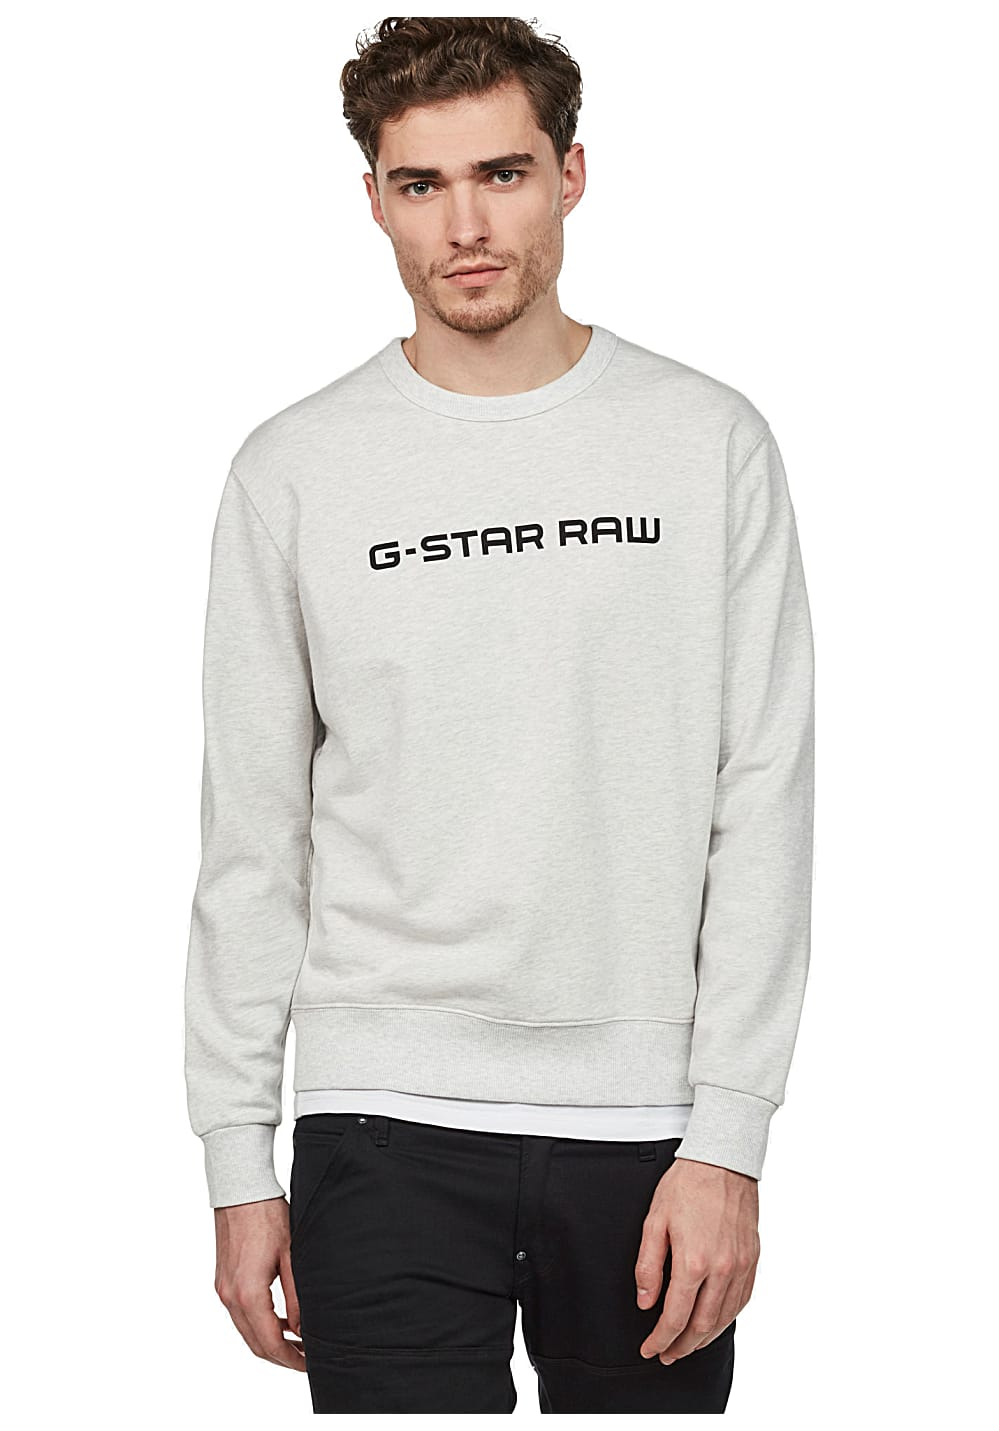 Blanc Planet Homme G R Star Pour Loaq Sports Sweat cpqwPz4Yw